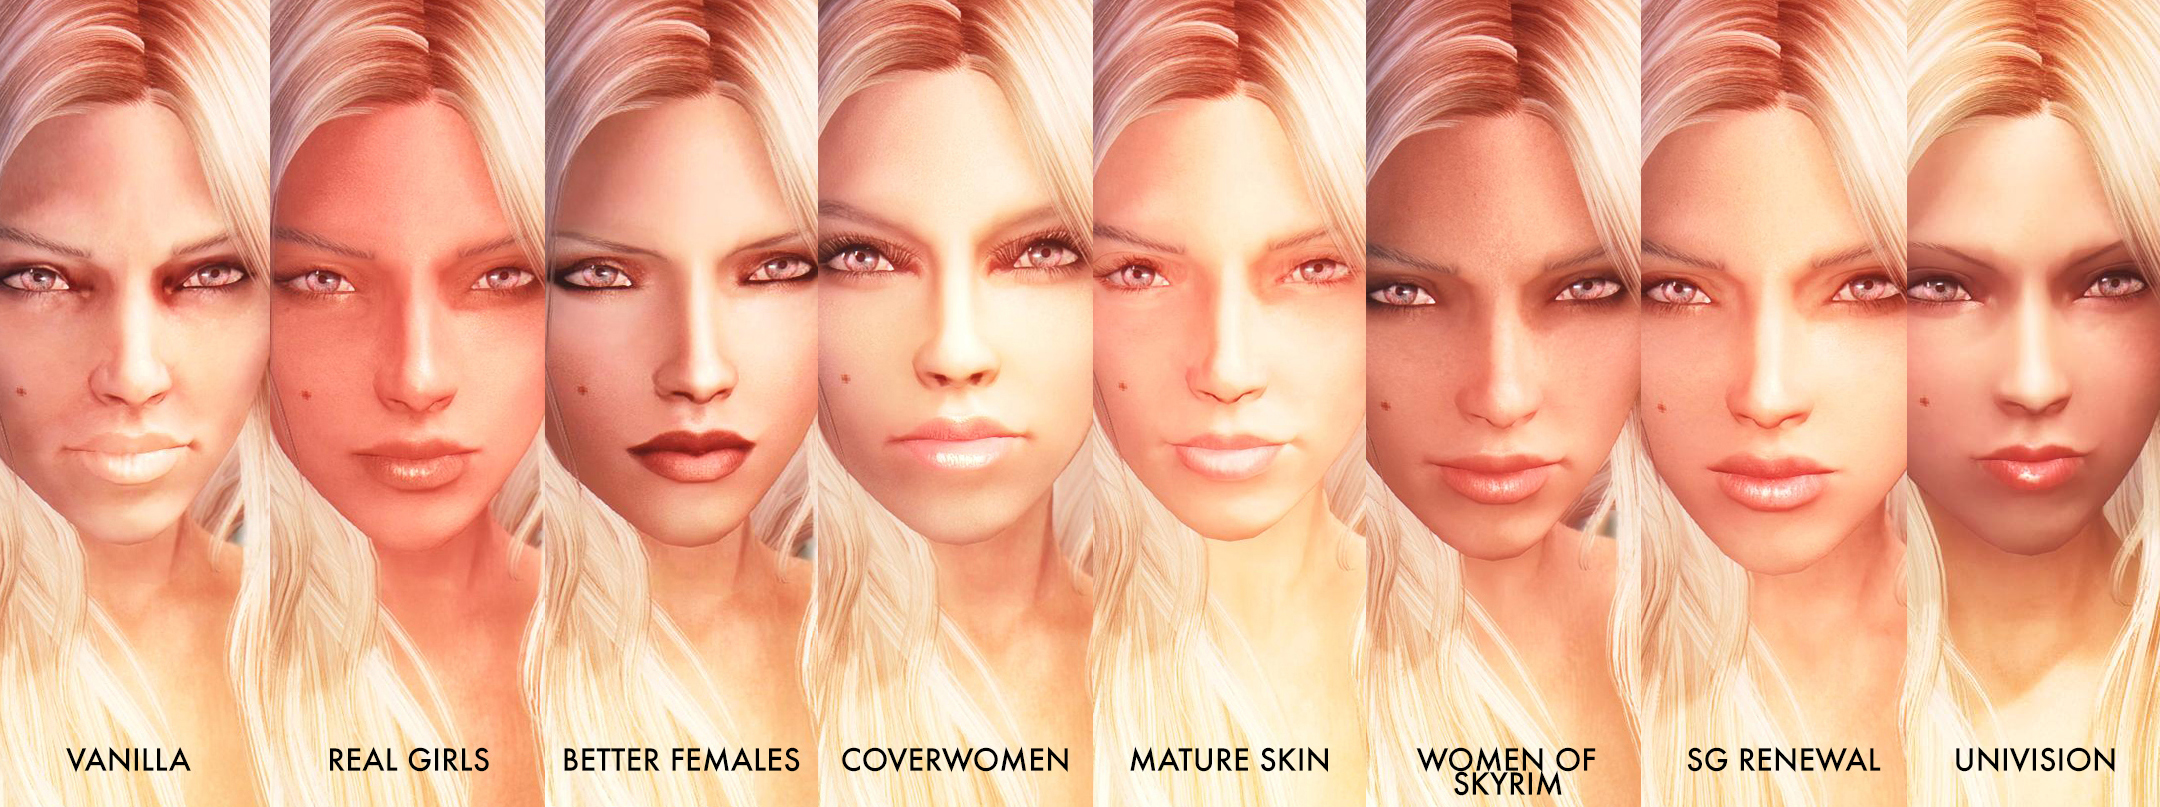 Skyrim: Most Realistic Female Face Texture Mods (Compares